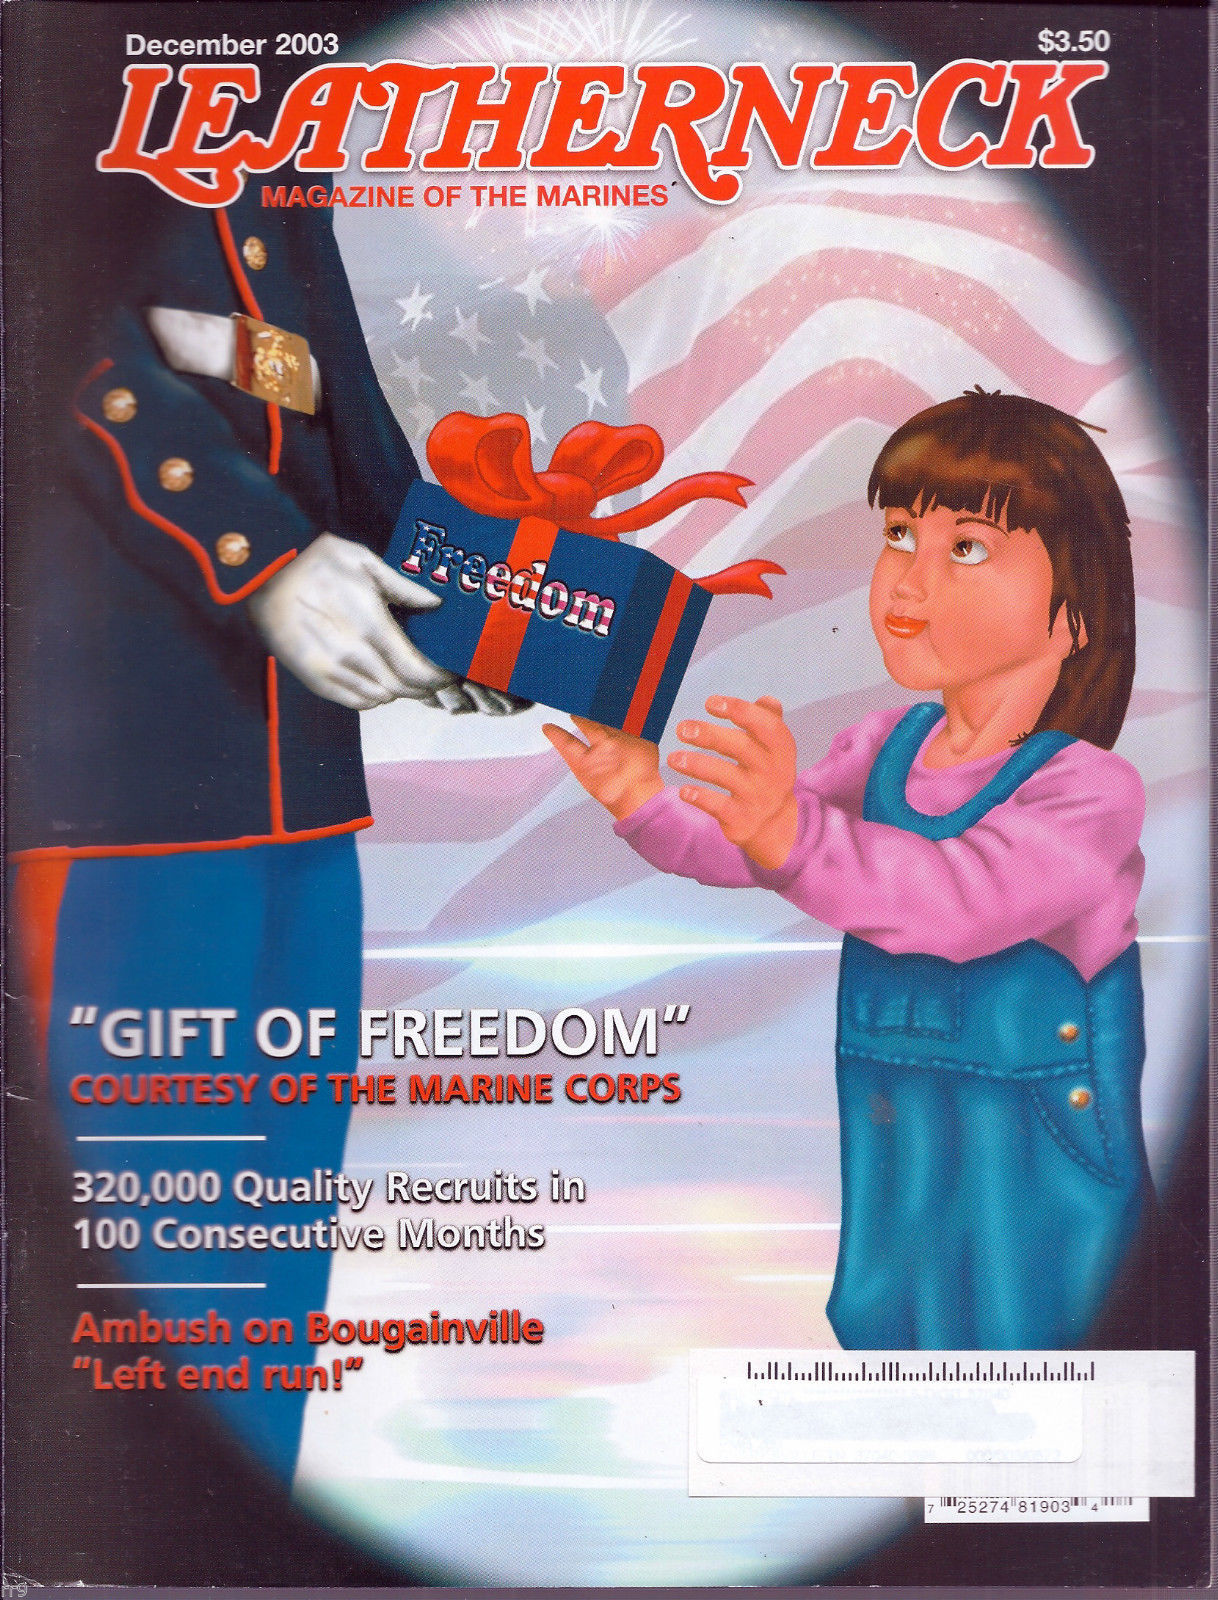 Primary image for Leatherneck Magazine of the Marines December 2003 Gift of Freedom